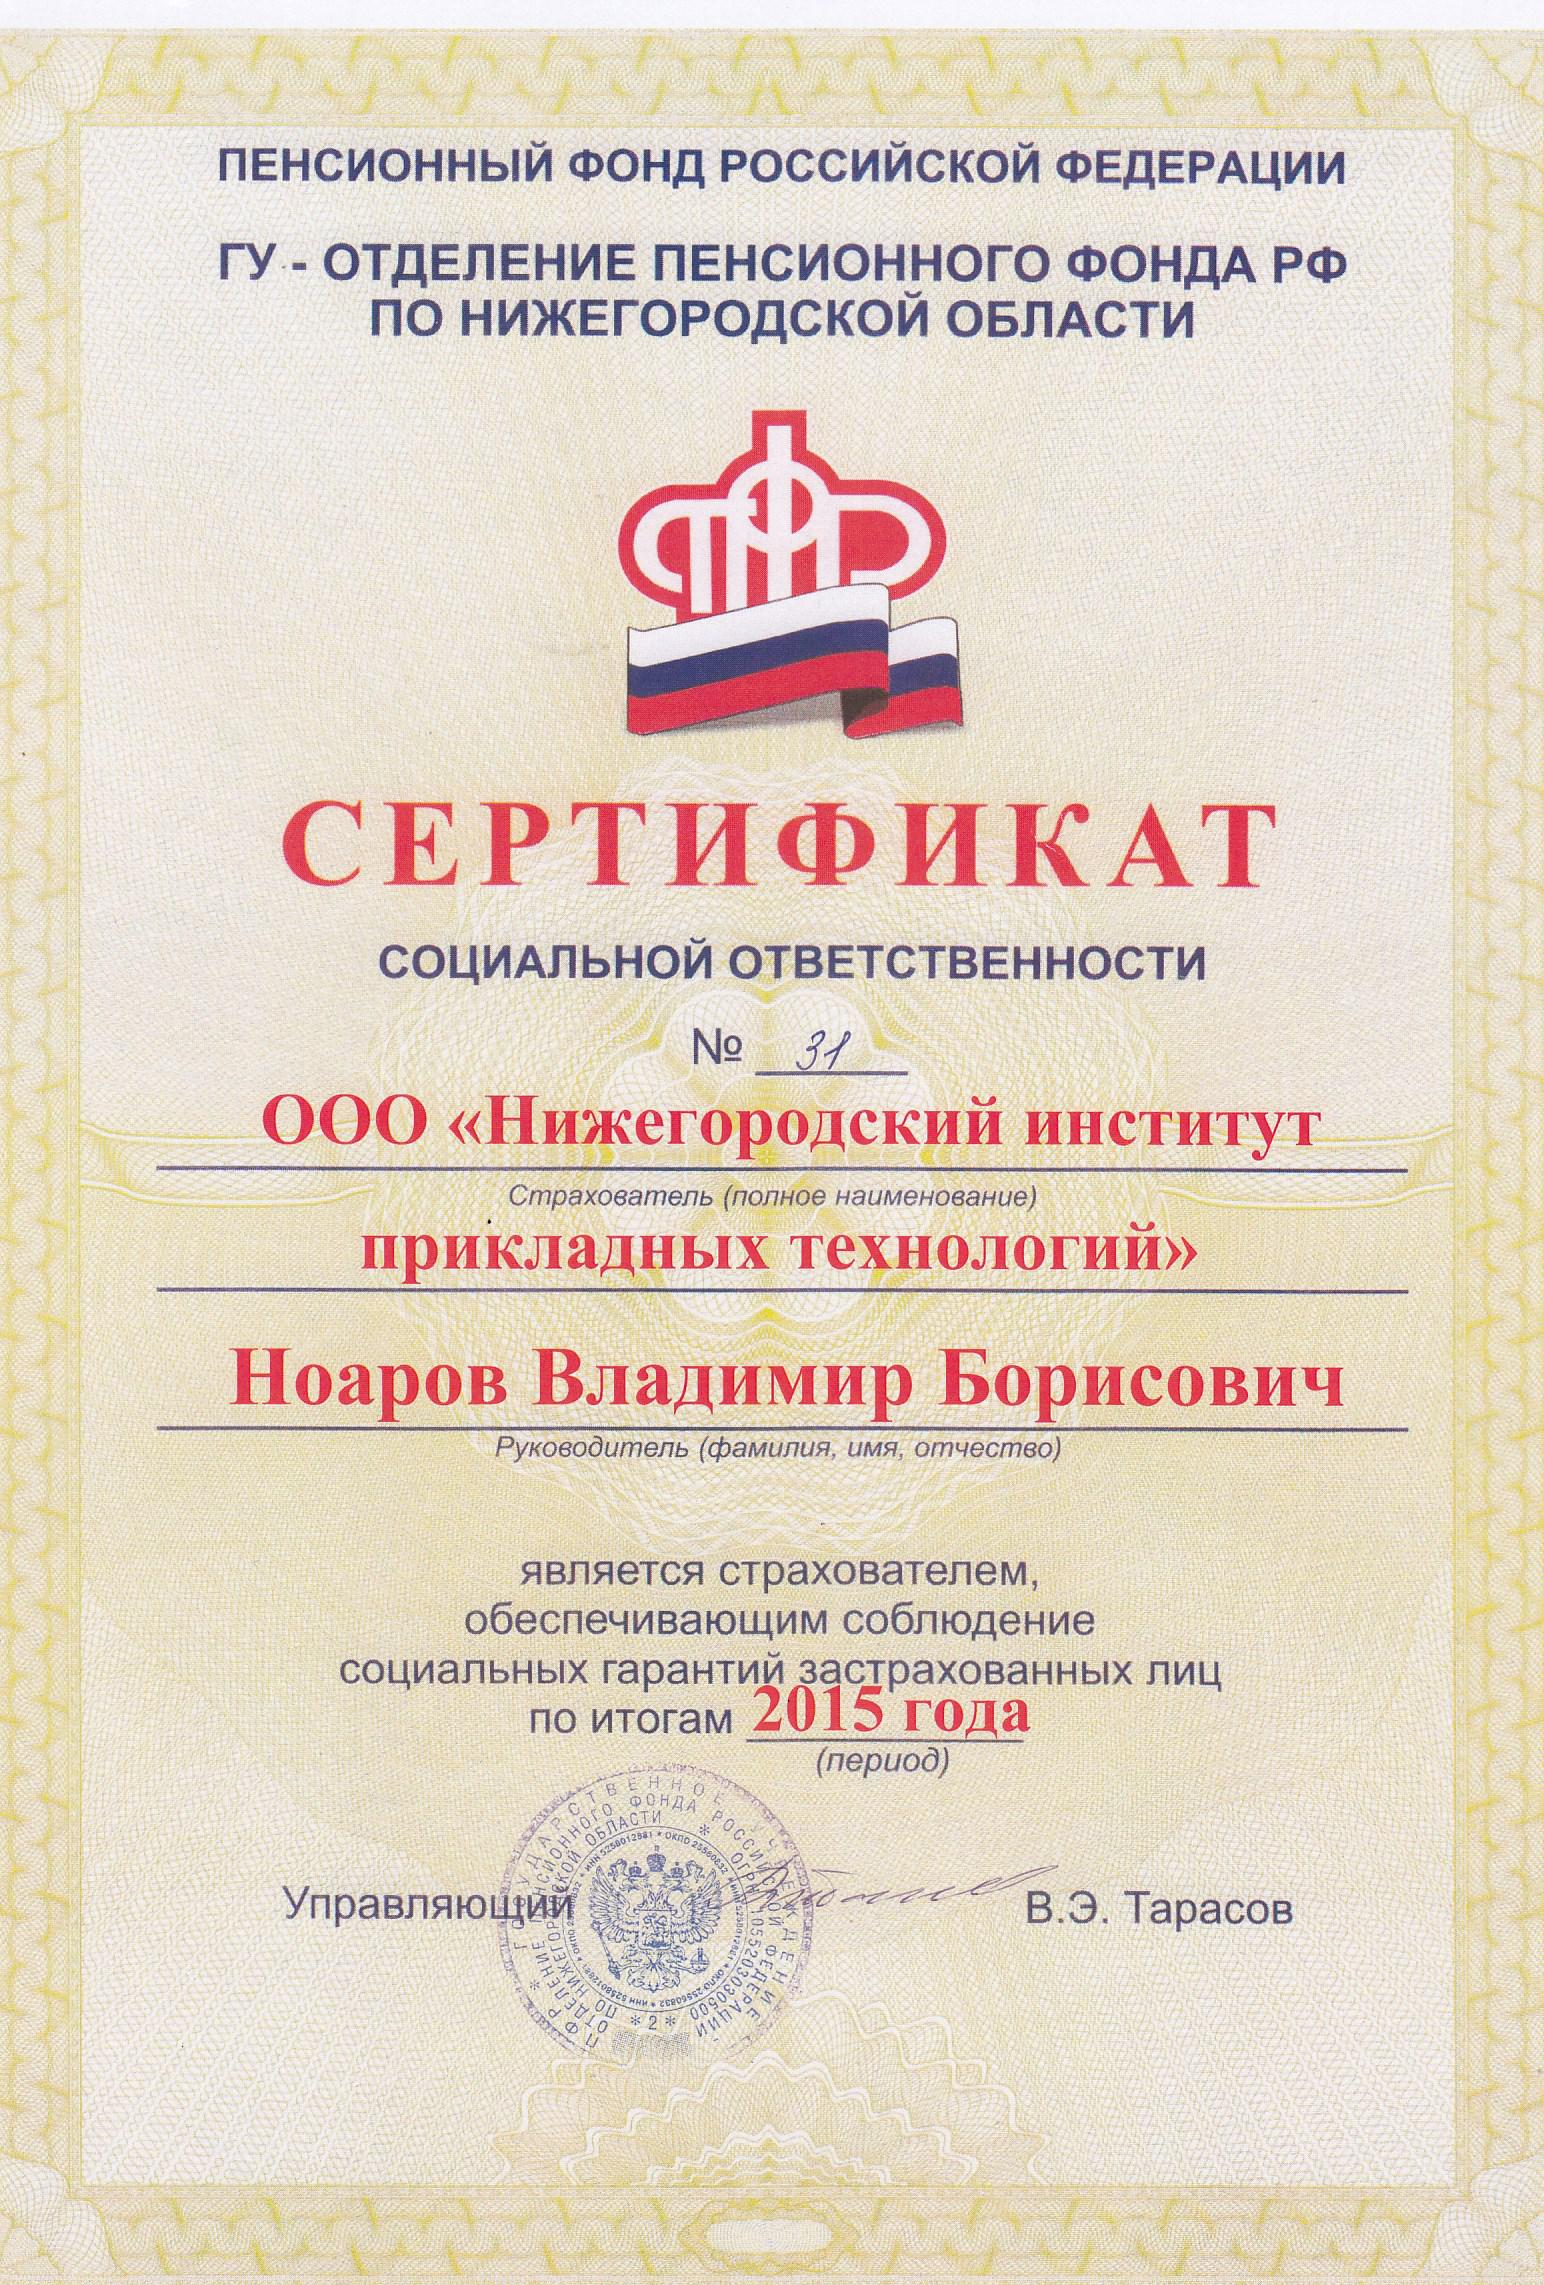 The company received social responsibility Certificate of timely and full payment of insurance